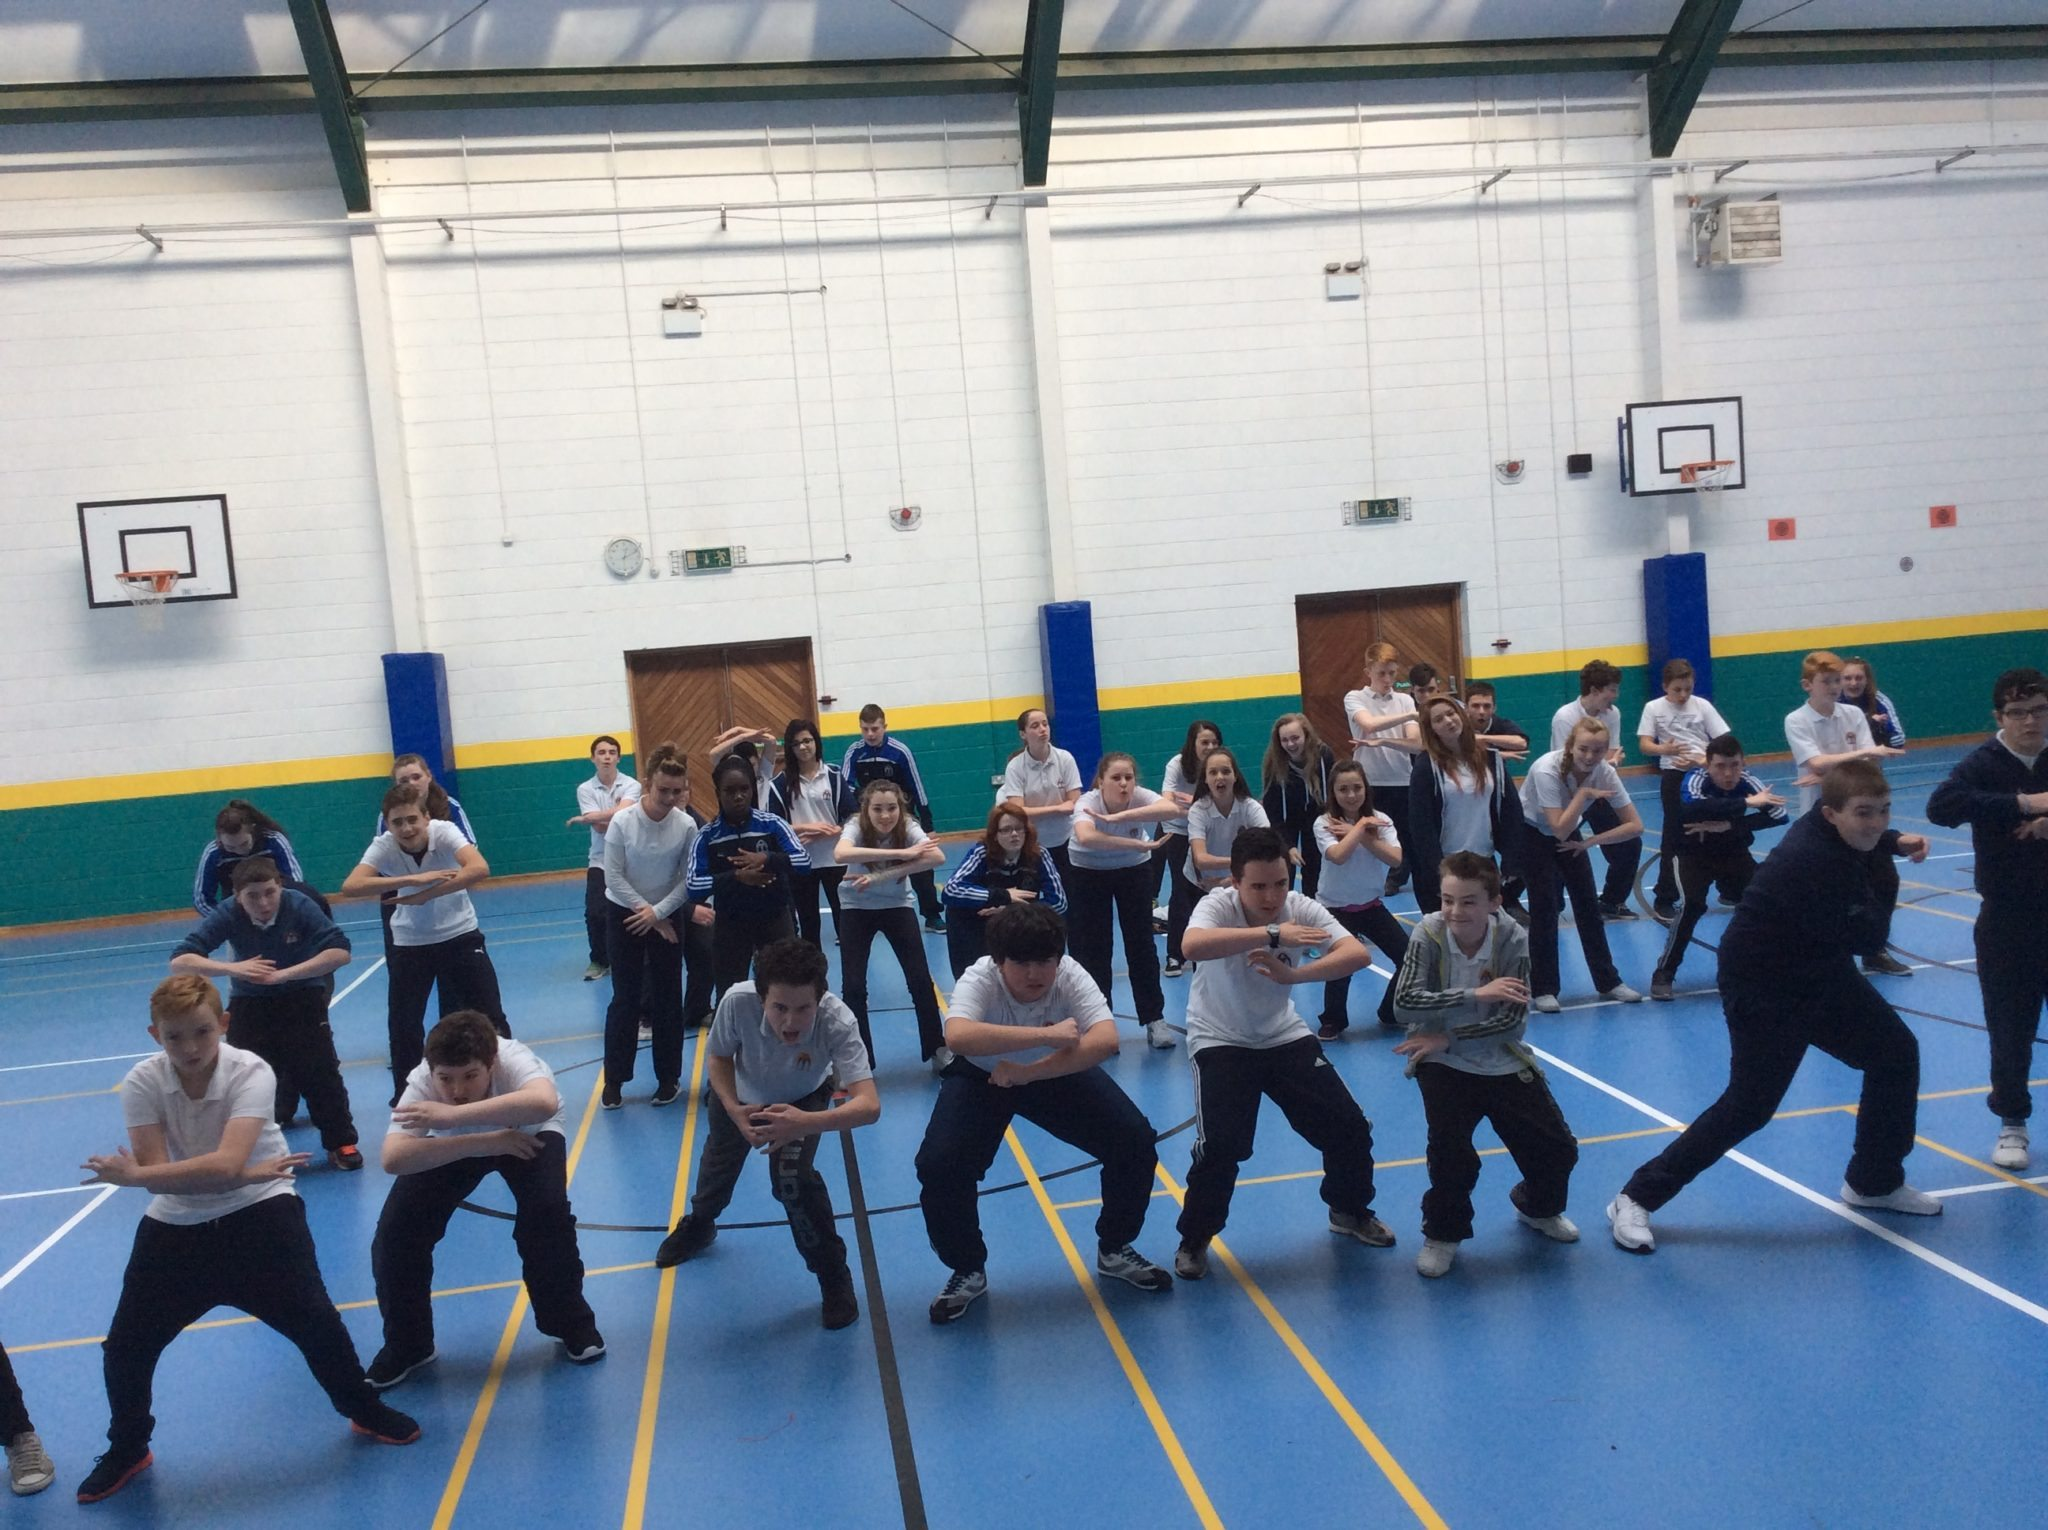 October 2015: Rugby Fever in Desmond College as Students learn the Haka in PE Class